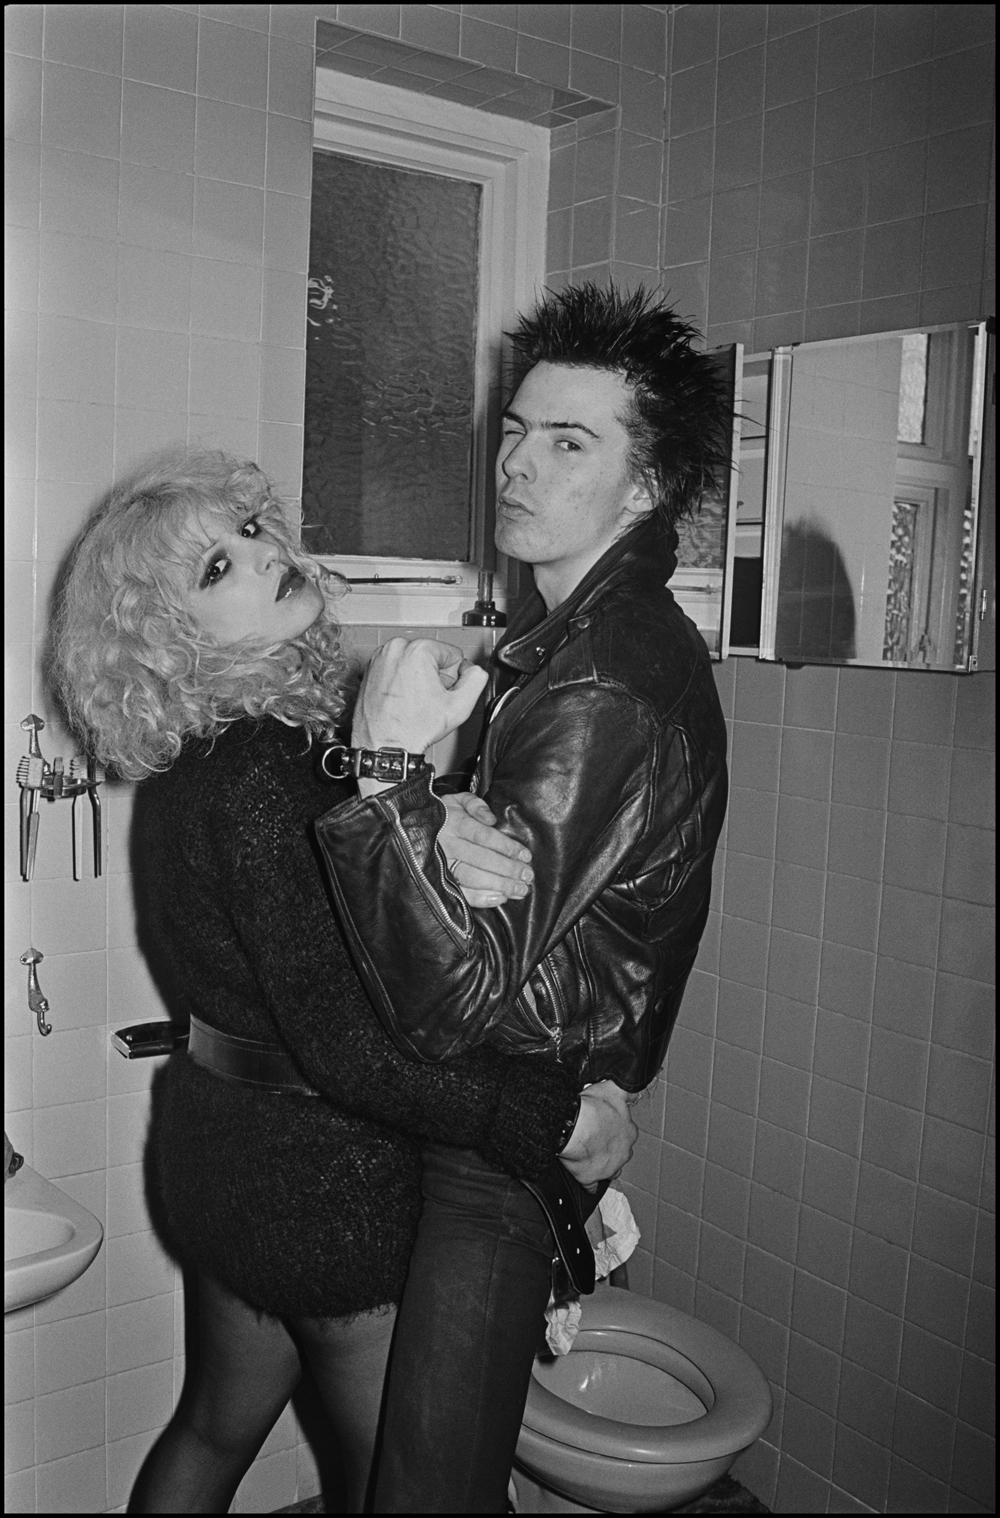 Sid and Nancy - Cricklewood 1978 When I shared a house with Phil Lynott from Thin Lizzy there were often musicians around, that veritable duo Cook and Jones from the Sex Pistols were frequent visitors. Sid and Nancy came over with them a couple of times, they did not behave like they did in public, they were well behaved and polite, they loved watching black and white Elvis Presley movies on Philip's video recorder, which was a rarity back then. Some nights we would go to bed whilst they were still watching the TV, I would go downstairs in the morning and they would be gone but the living room would be clean and tidy, they had even emptied the ashtrays, not exactly what you would expect them to do. They were always respectful to Philip although Sid was not really interested in getting tips from him on bass playing, one night I asked them to pose for pictures in our bathroom, they duly obliged and the photo appeared on the front page of the NME. To me they were a couple that were very much in love, and Nancy did everything she could for Sid, he was quite funny really and they never caused us any trouble, their end was tragic beyond words, but it fitted the legend that they had already carved out for themselves.